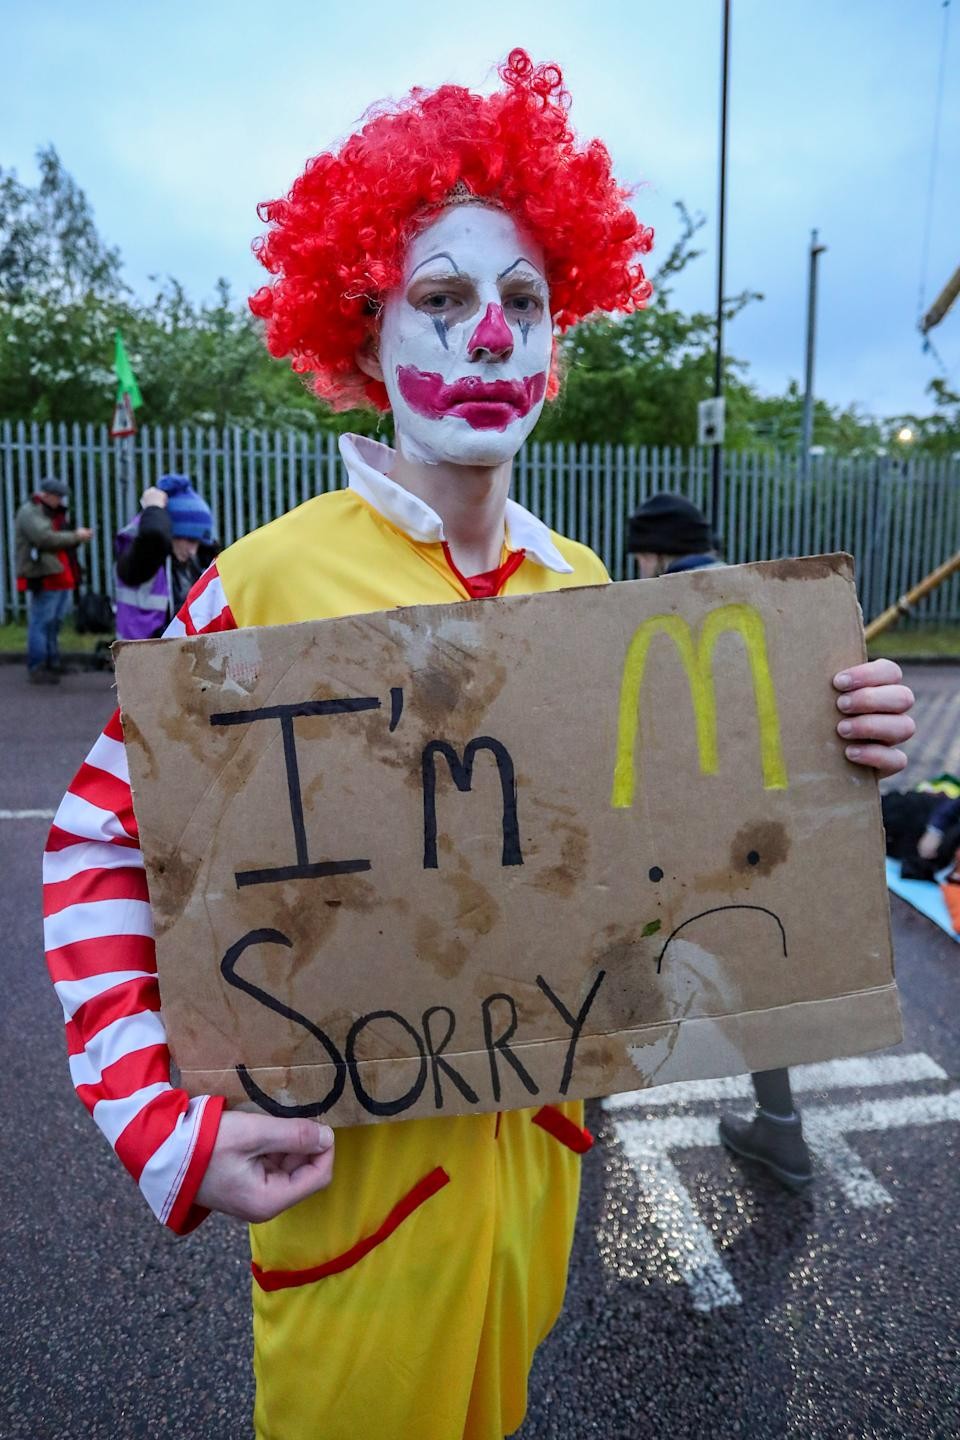 LONDON, UNITED KINGDOM - MAY 22: Protestors gather outside McDonalds distribution center in Hemel Hempstead Industrial Estate in North London on the early morning of Saturday, May 22, 2021 - to blockade the site for at least 24 hours, using trucks and bamboo structures, causing a significant disruption to the McDonald's supply chain. (Photo by Vudi Xhymshiti/Anadolu Agency via Getty Images)